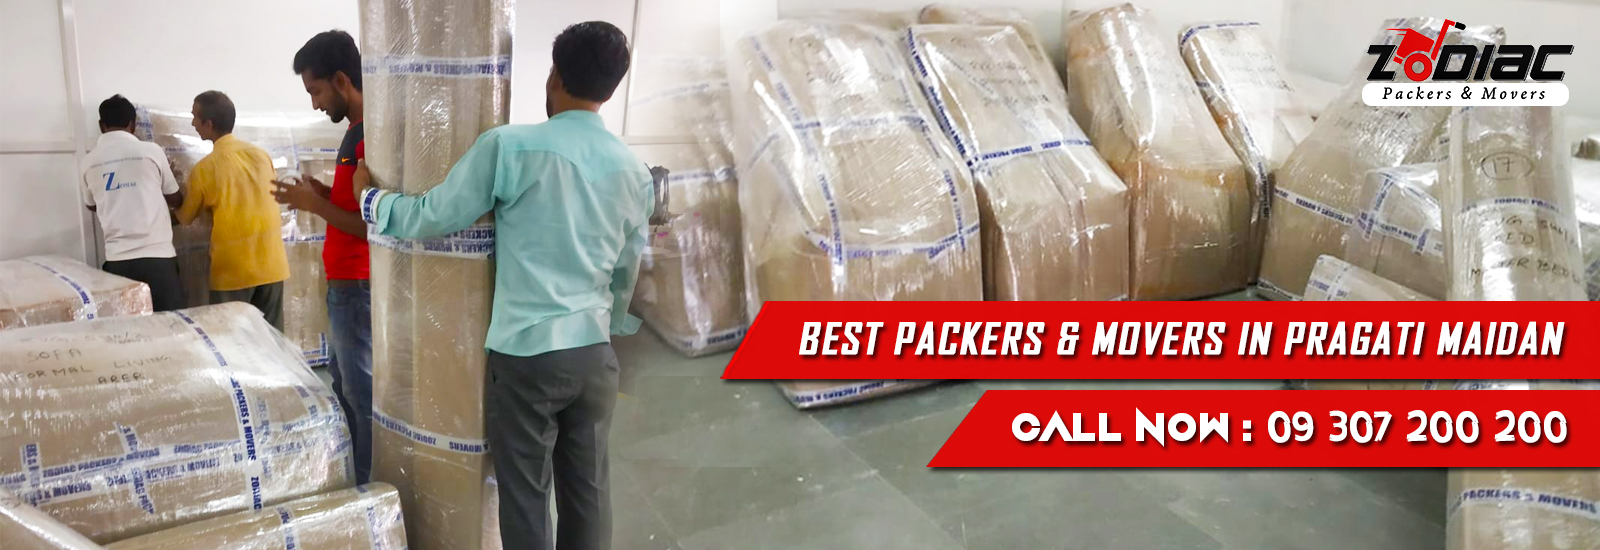 Packers and Movers in Pragati Maidan